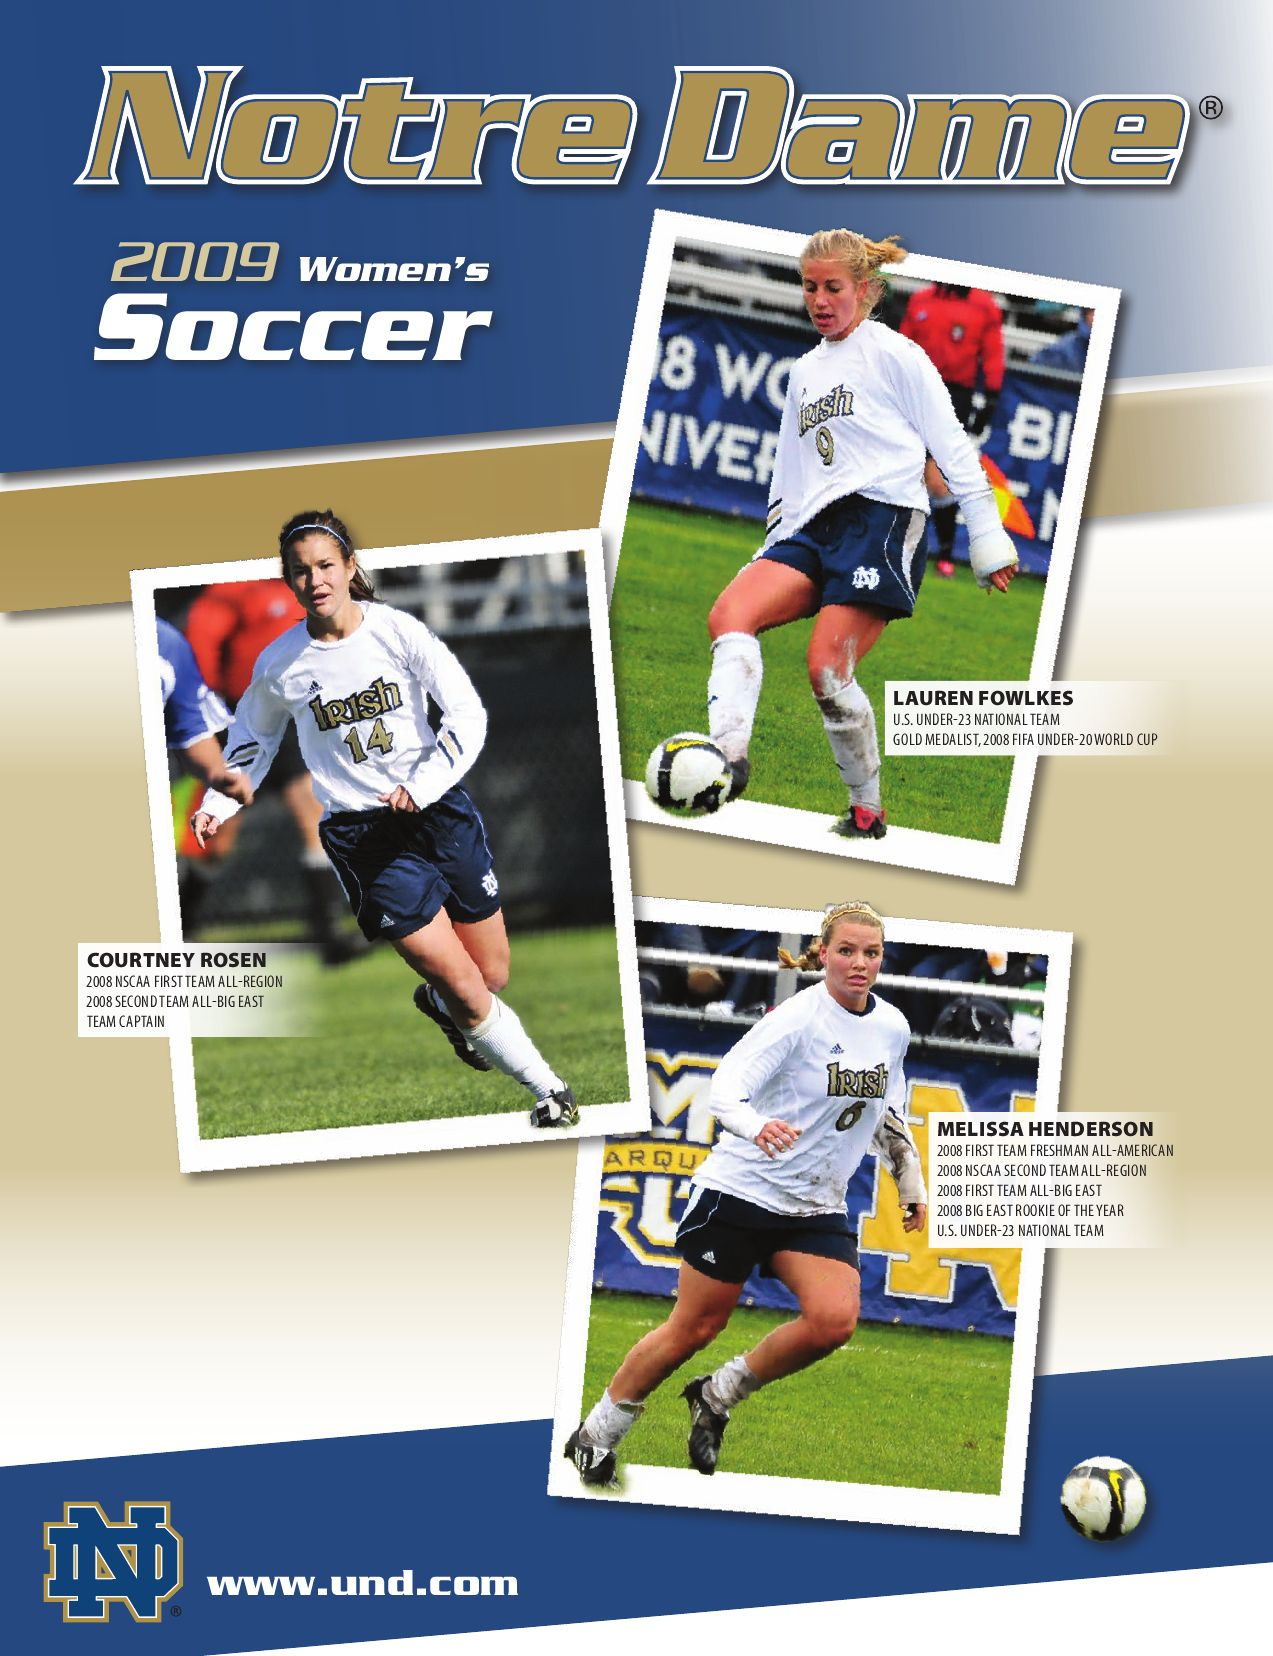 424b7eb0d 2009 Notre Dame Women s Soccer Information Guide by Chris Masters - issuu